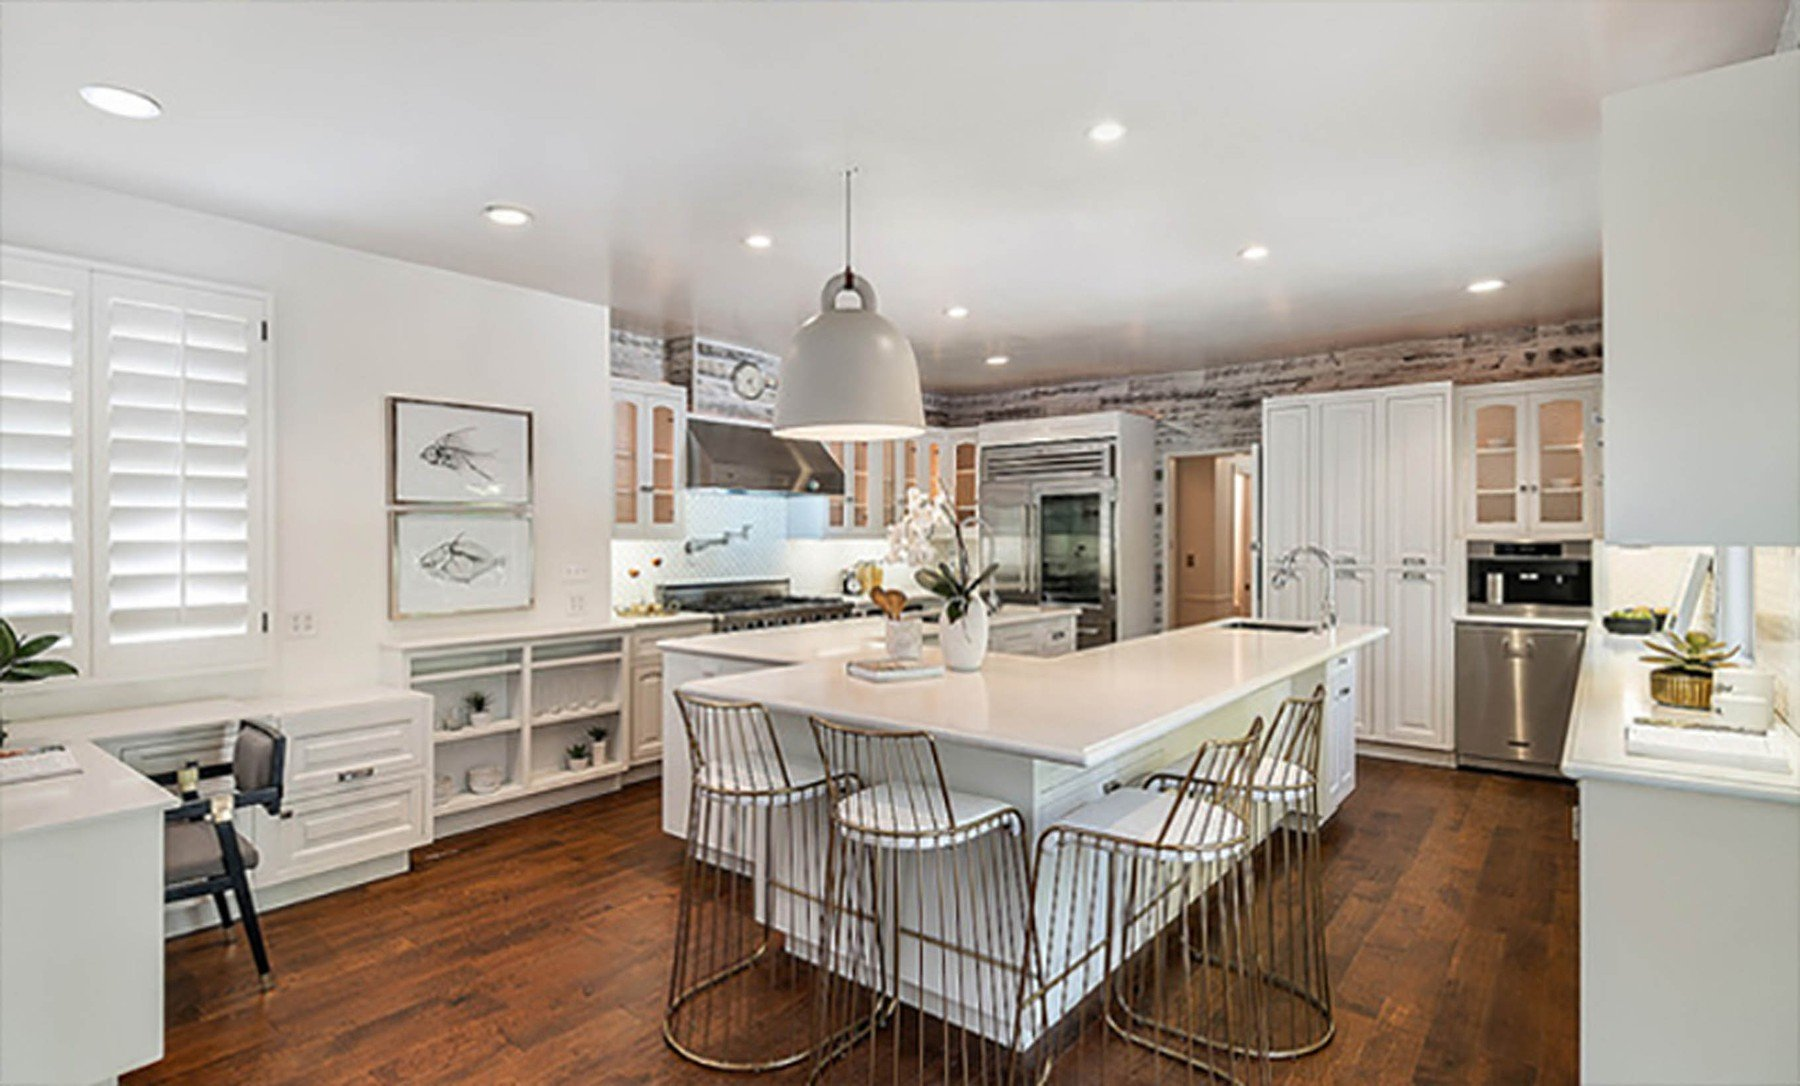 2-4-2019  Jessica Alba is looking to sell her home in Beverly Hills, Los Angeles for .195 million having recently purchased a larger house. With 5,300 square feet of living space, there are 5 bedrooms and 7 bathrooms. Built in the mid-1970s, the house sits on almost half of an acre of land behind large security gates.  Pictured: Jessica Alba's house, Image: 423690054, License: Rights-managed, Restrictions: , Model Release: no, Credit line: Profimedia, Planet